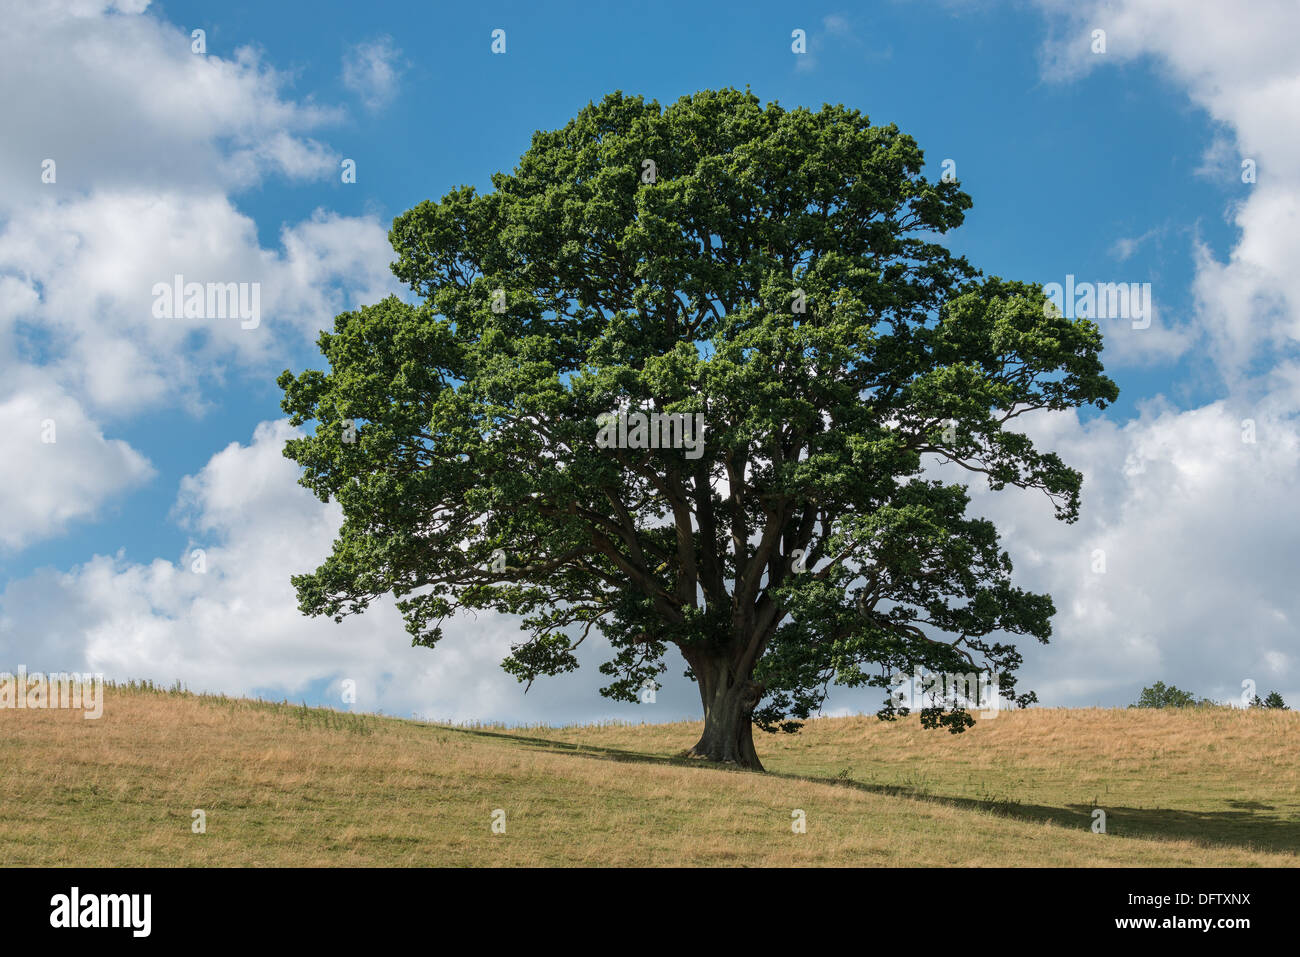 OAK TREE IN HIGH SUMMER ON GRASS COVERED HILLS WITH BLUE SKY AND WHITE CLOUDS UK - Stock Image